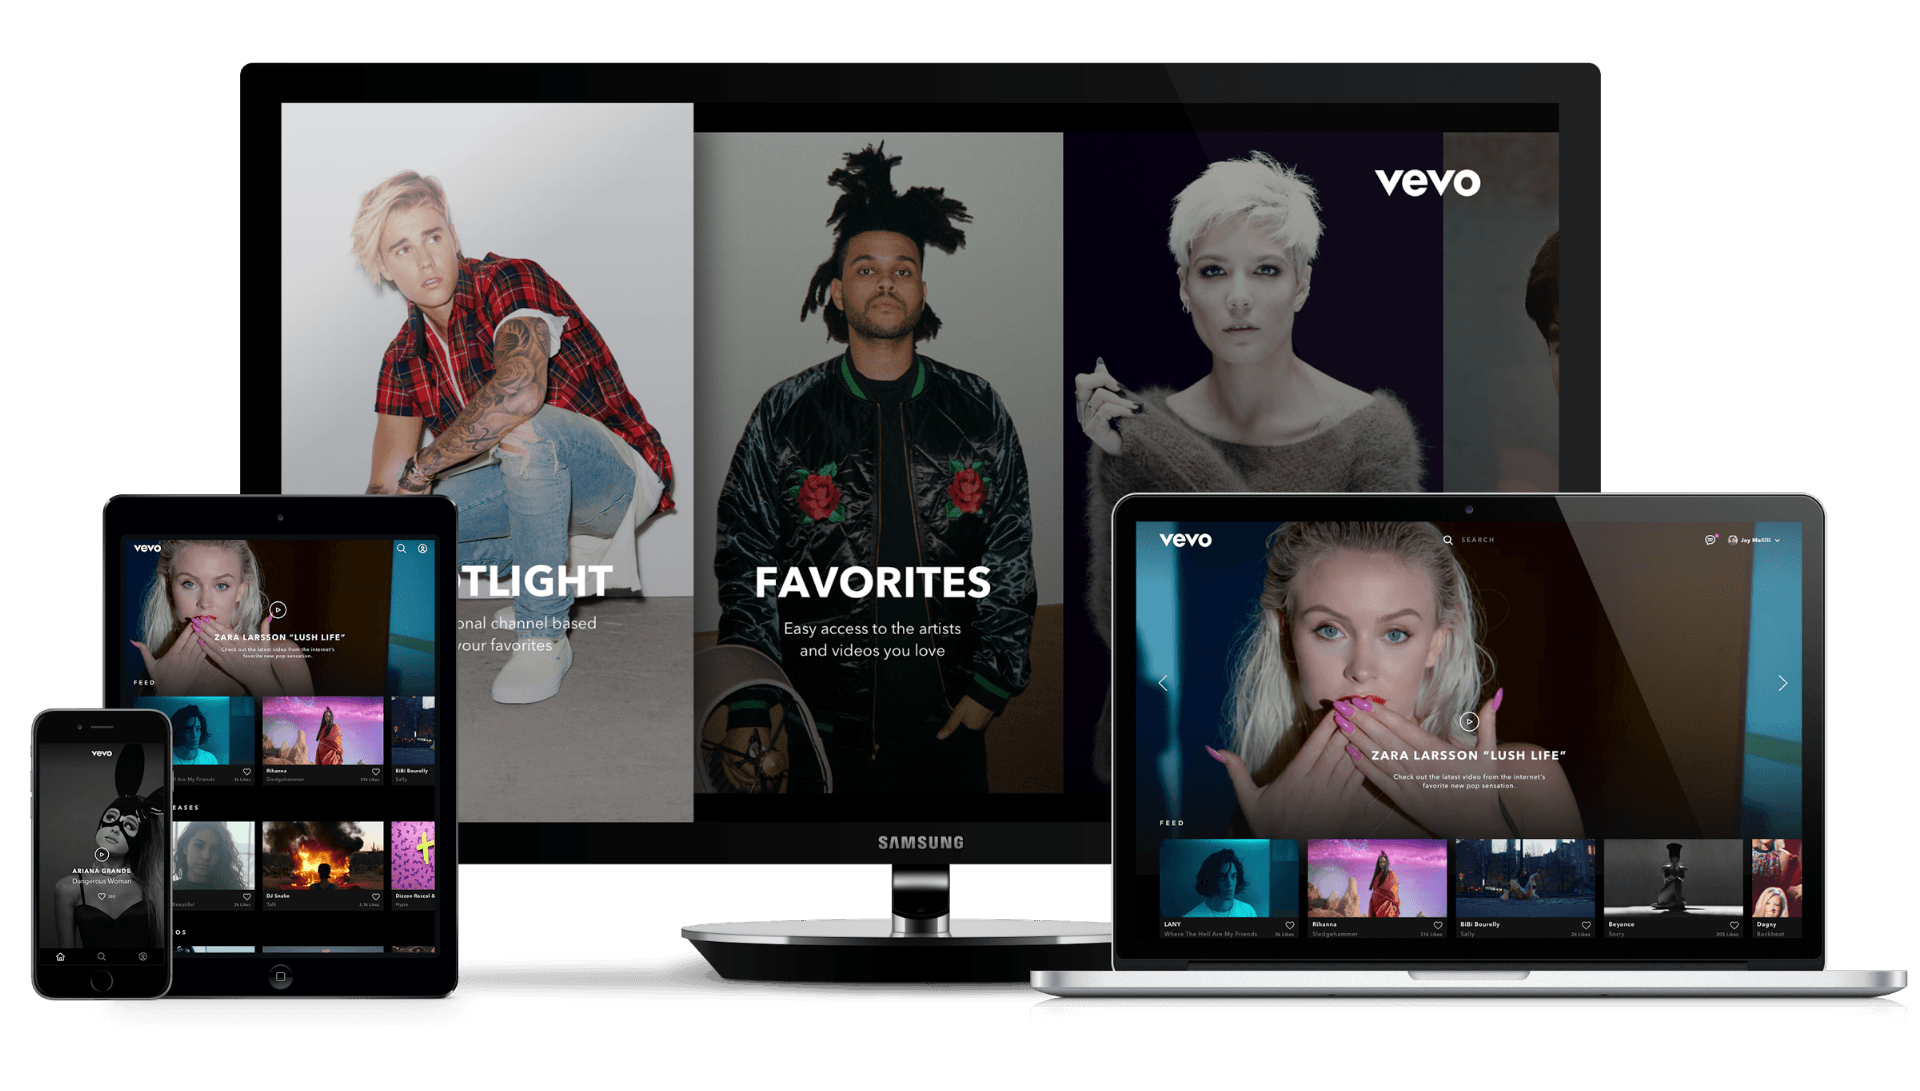 vevo_products